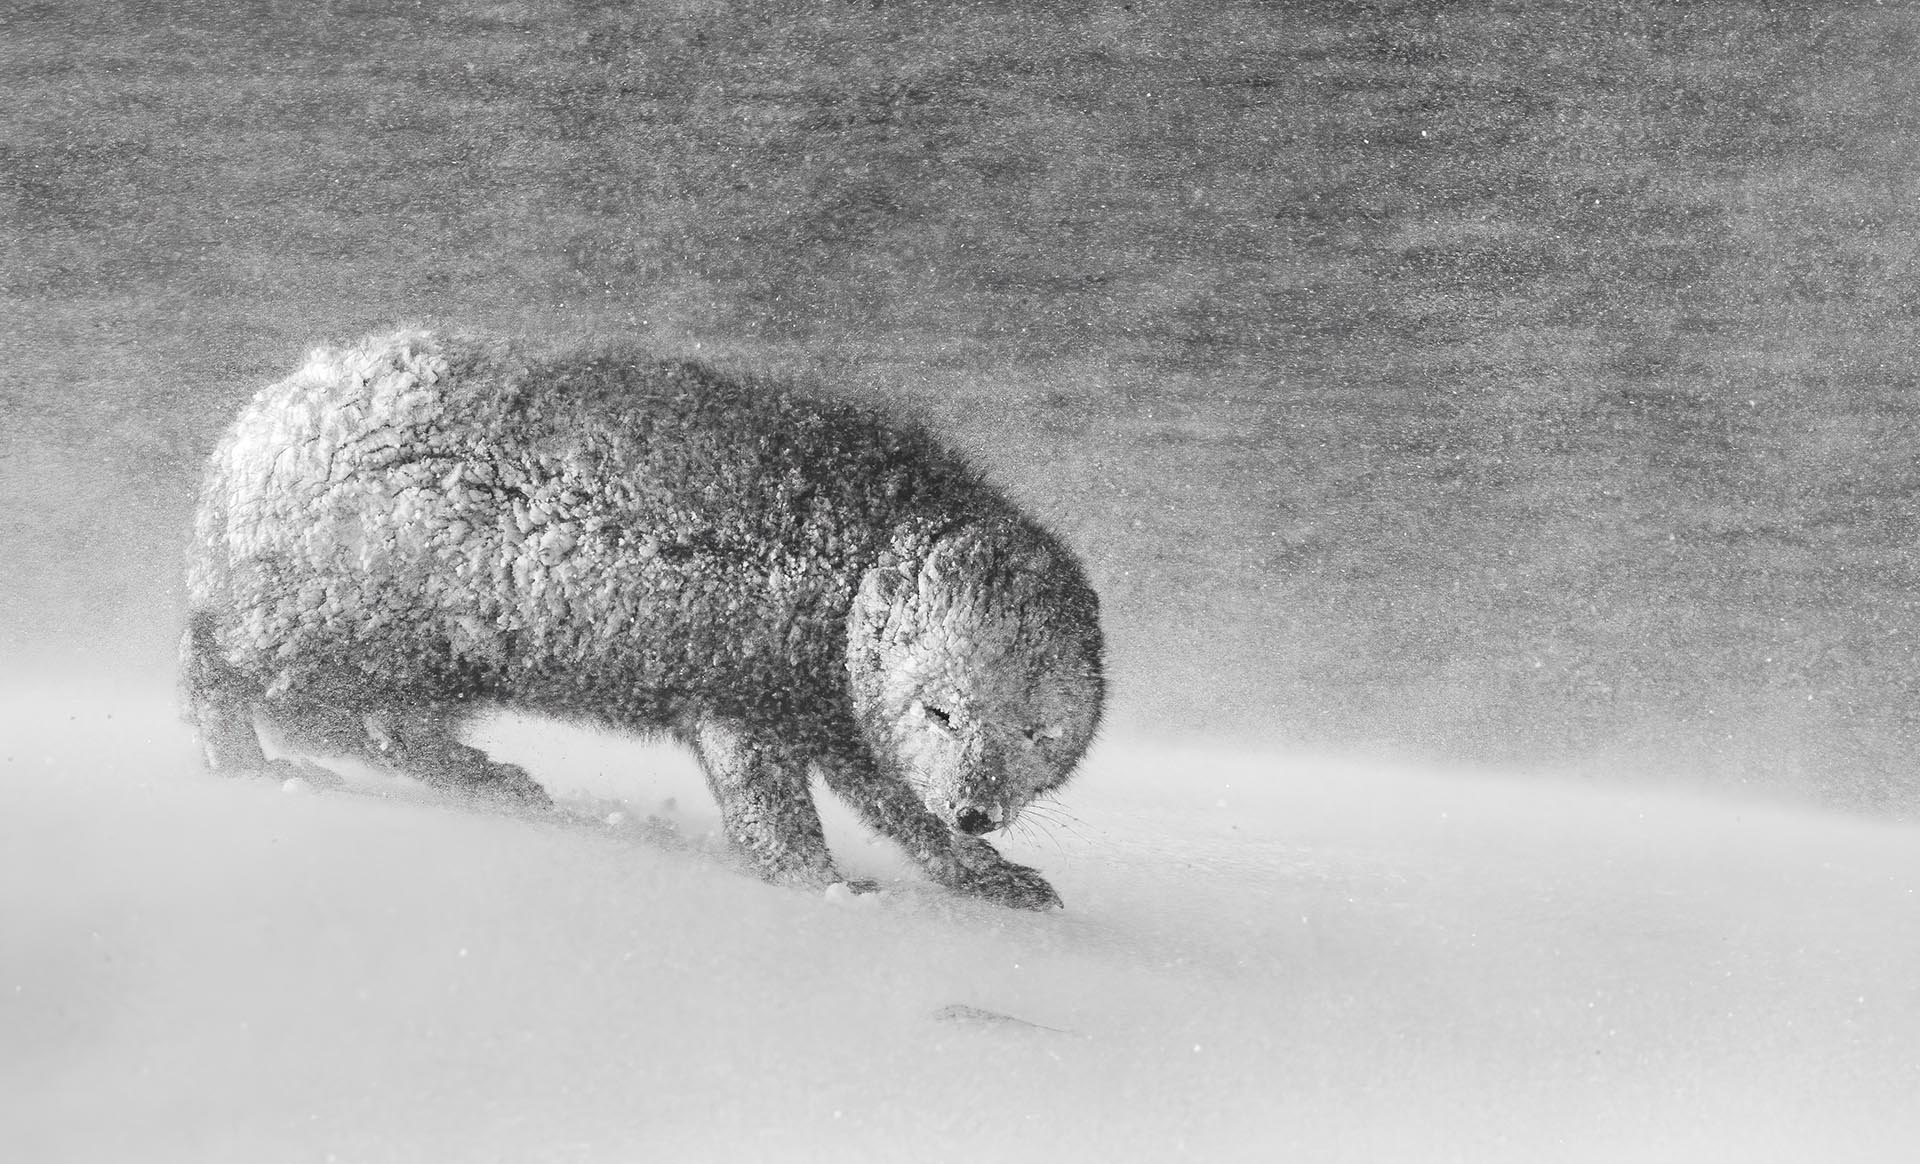 C9 Black & White Highly commended David Gibbon - Nature Photographer of the Year